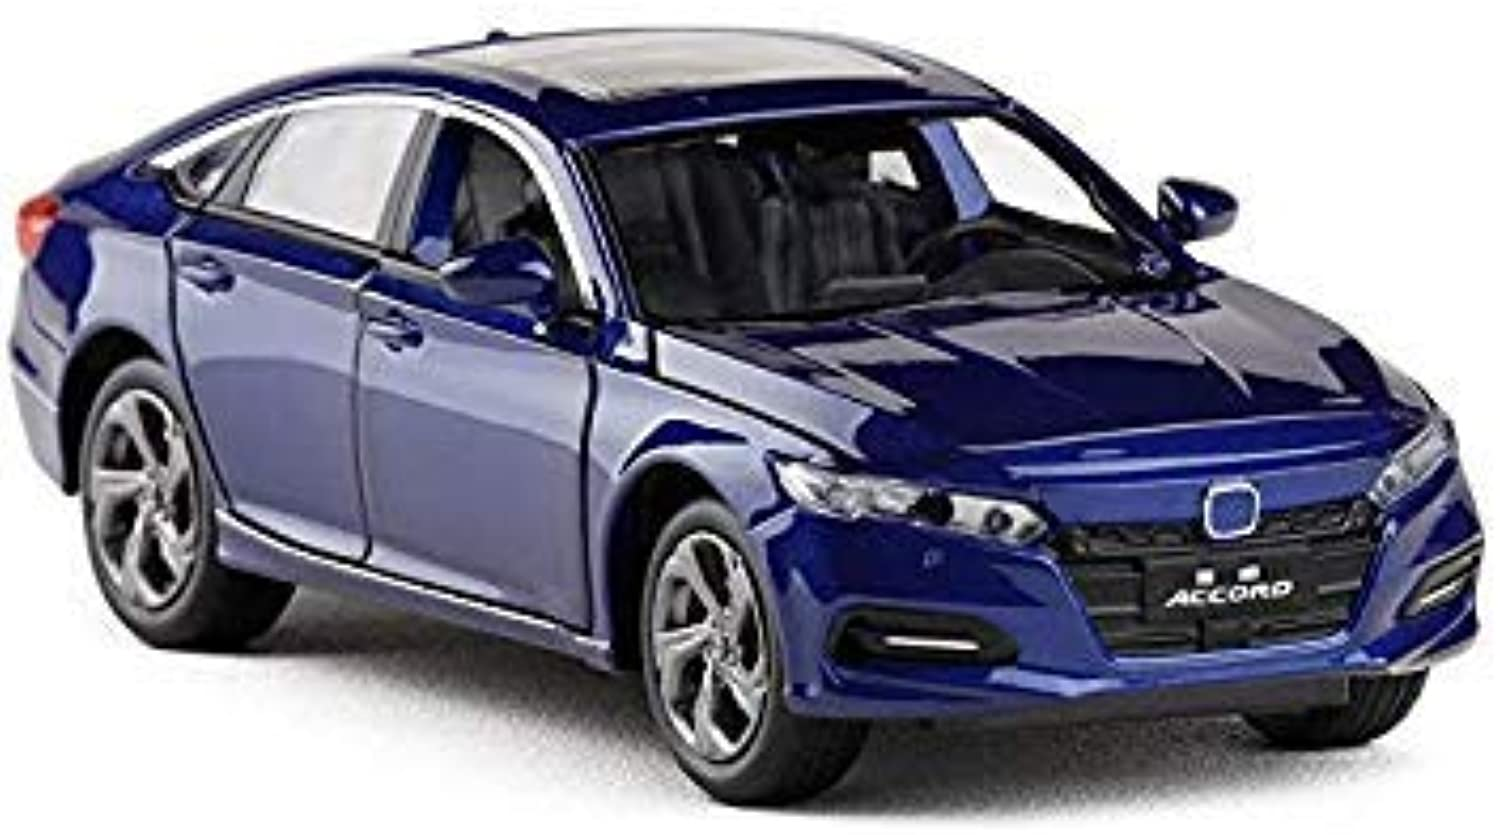 1 32 Scale Honda Accord Car Model Toy Sound Light Diecast Metal Pull Back Car Model Toy for Gift Collection bluee